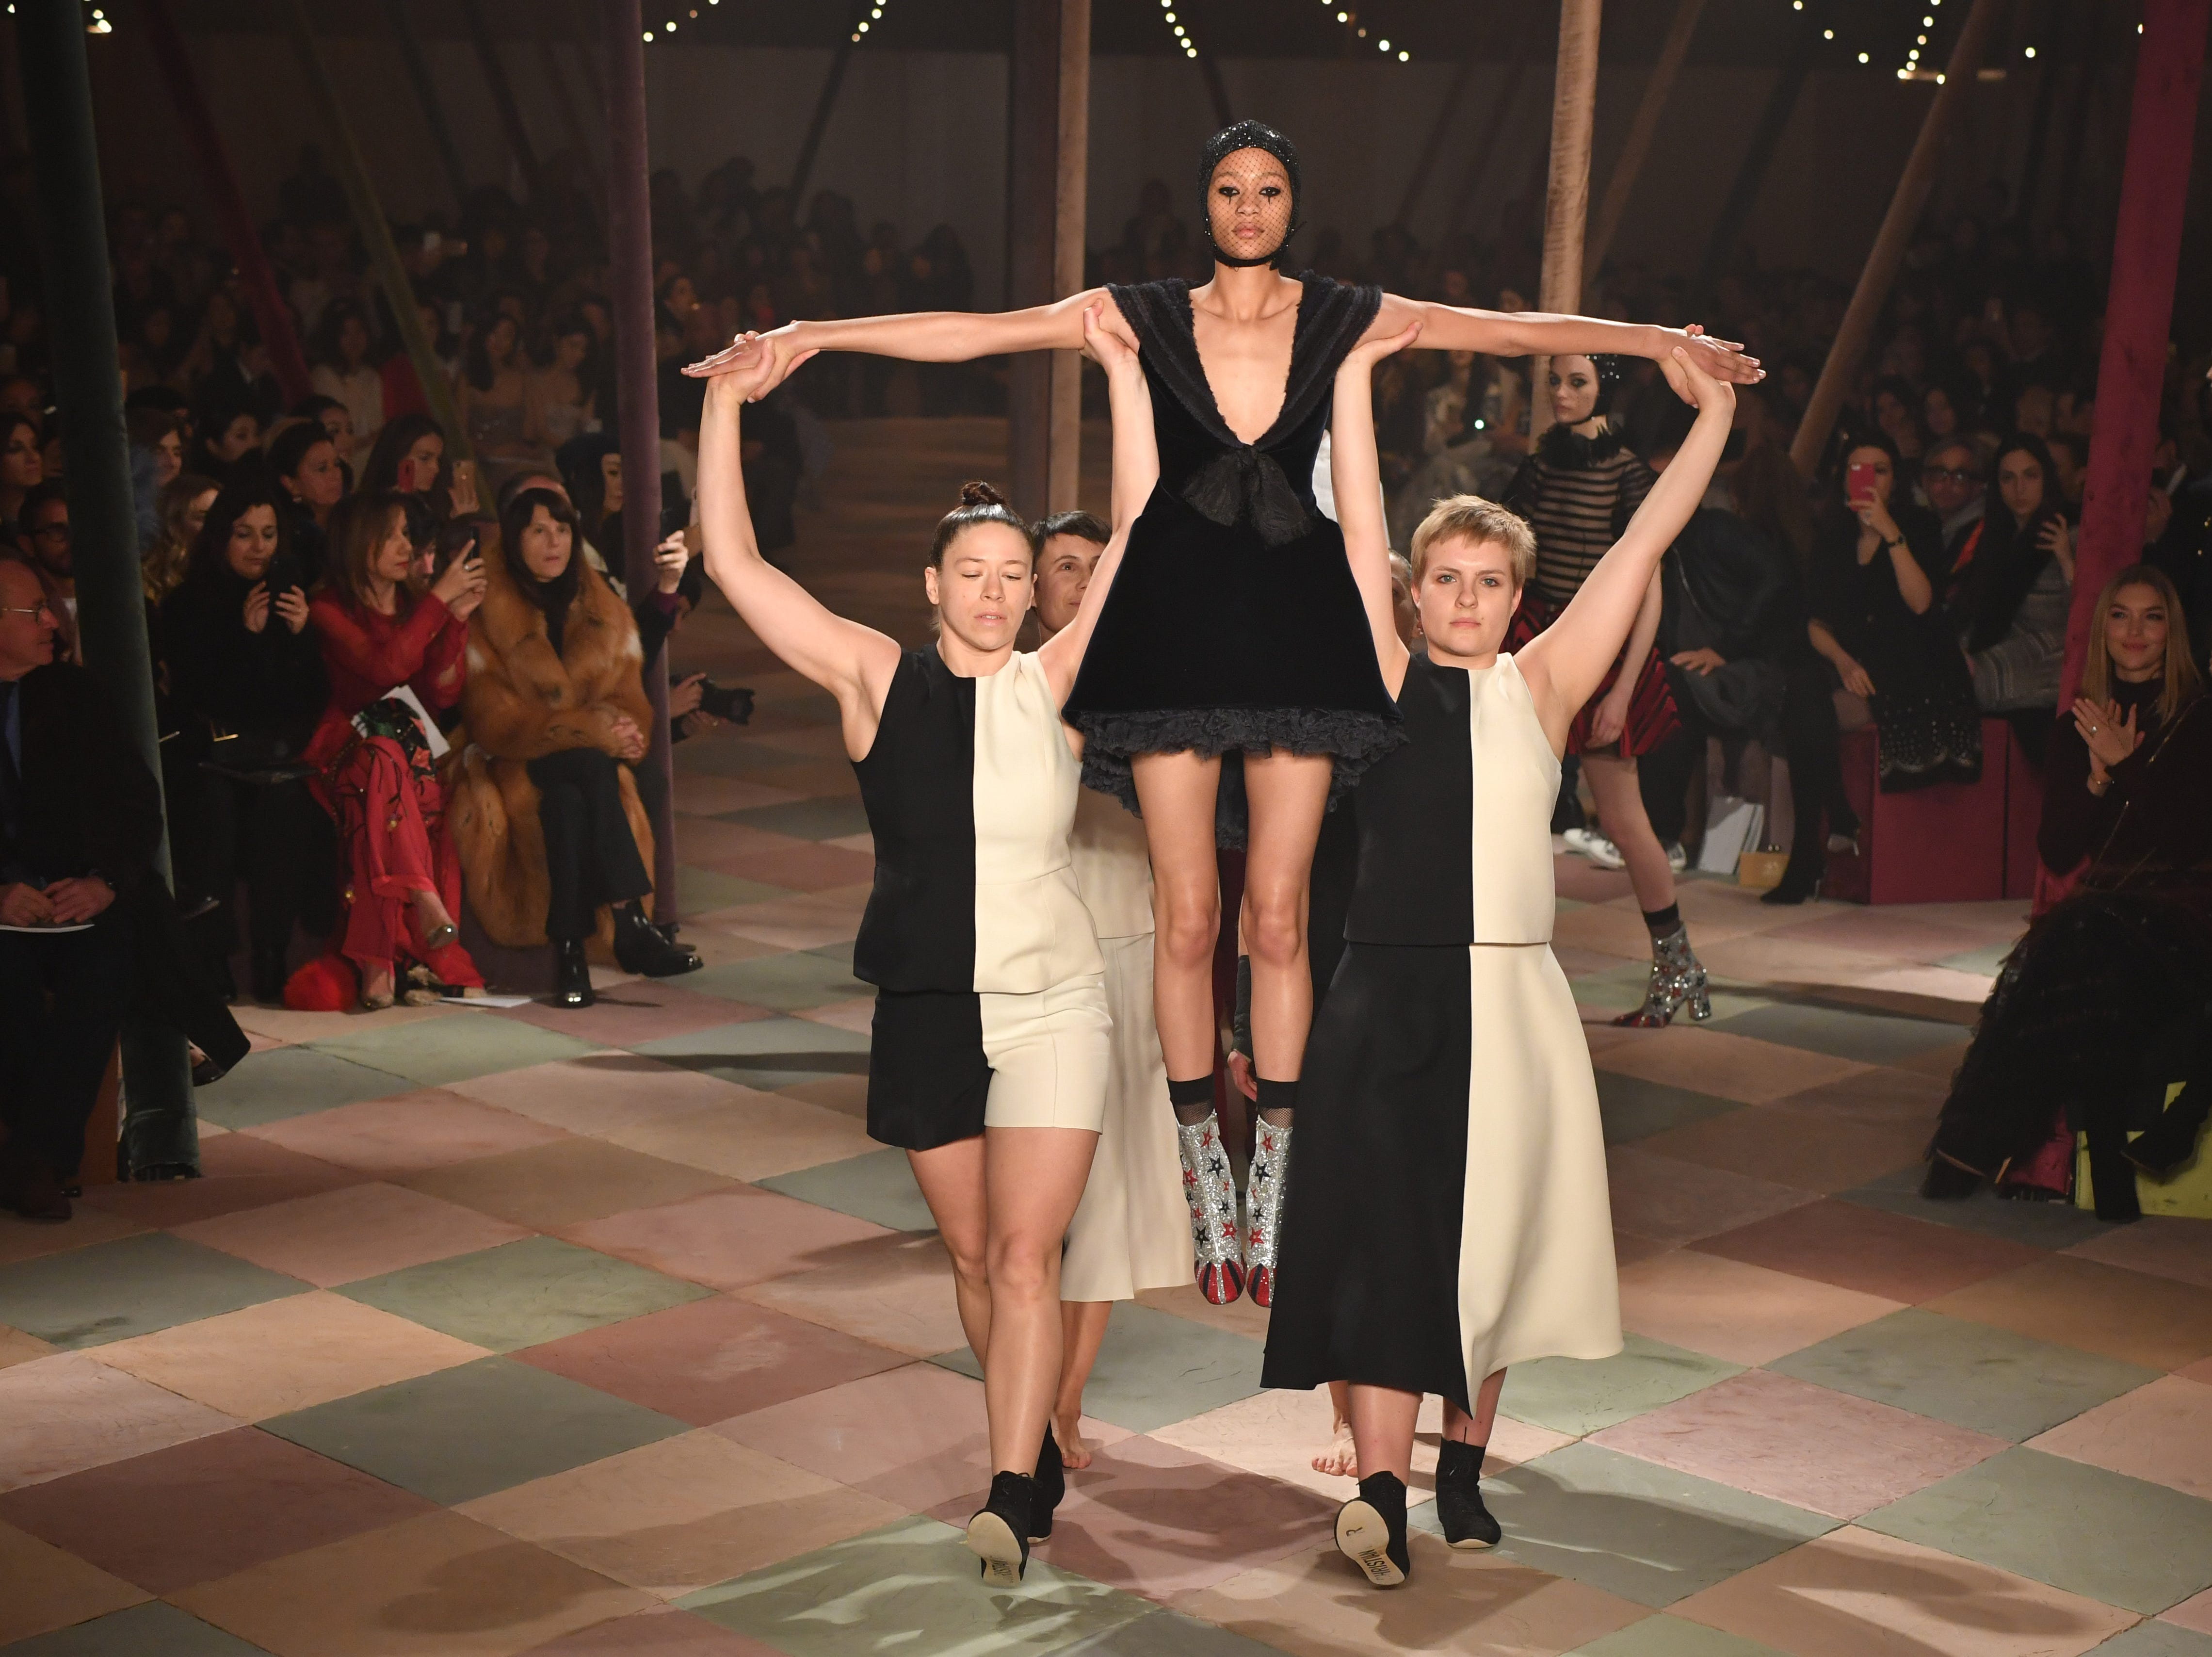 PARIS, FRANCE - JANUARY 21: A model with performers on the runway during the Christian Dior Spring Summer 2019 show as part of Paris Fashion Week on January 21, 2019 in Paris, France. (Photo by Pascal Le Segretain/Getty Images) ORG XMIT: 775271695 ORIG FILE ID: 1097431800